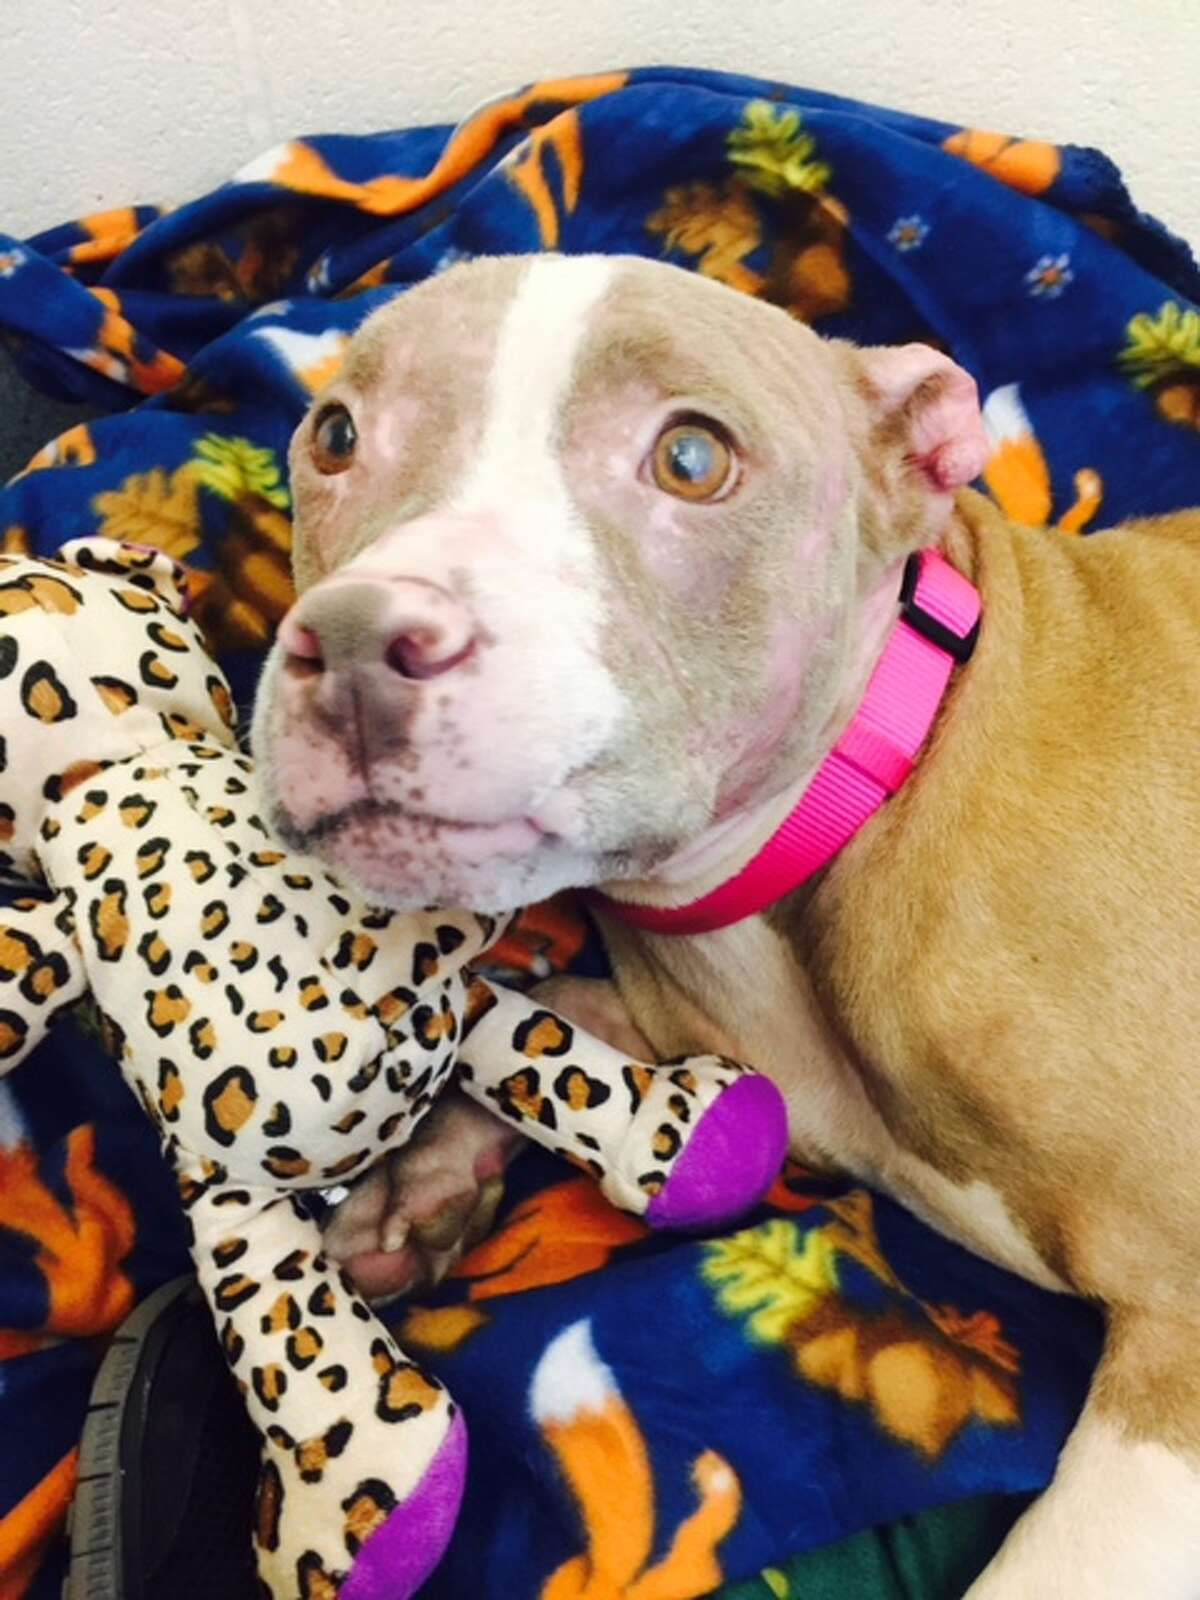 Rosie the pit bull has spent two months recovering from horrific chemical burns.